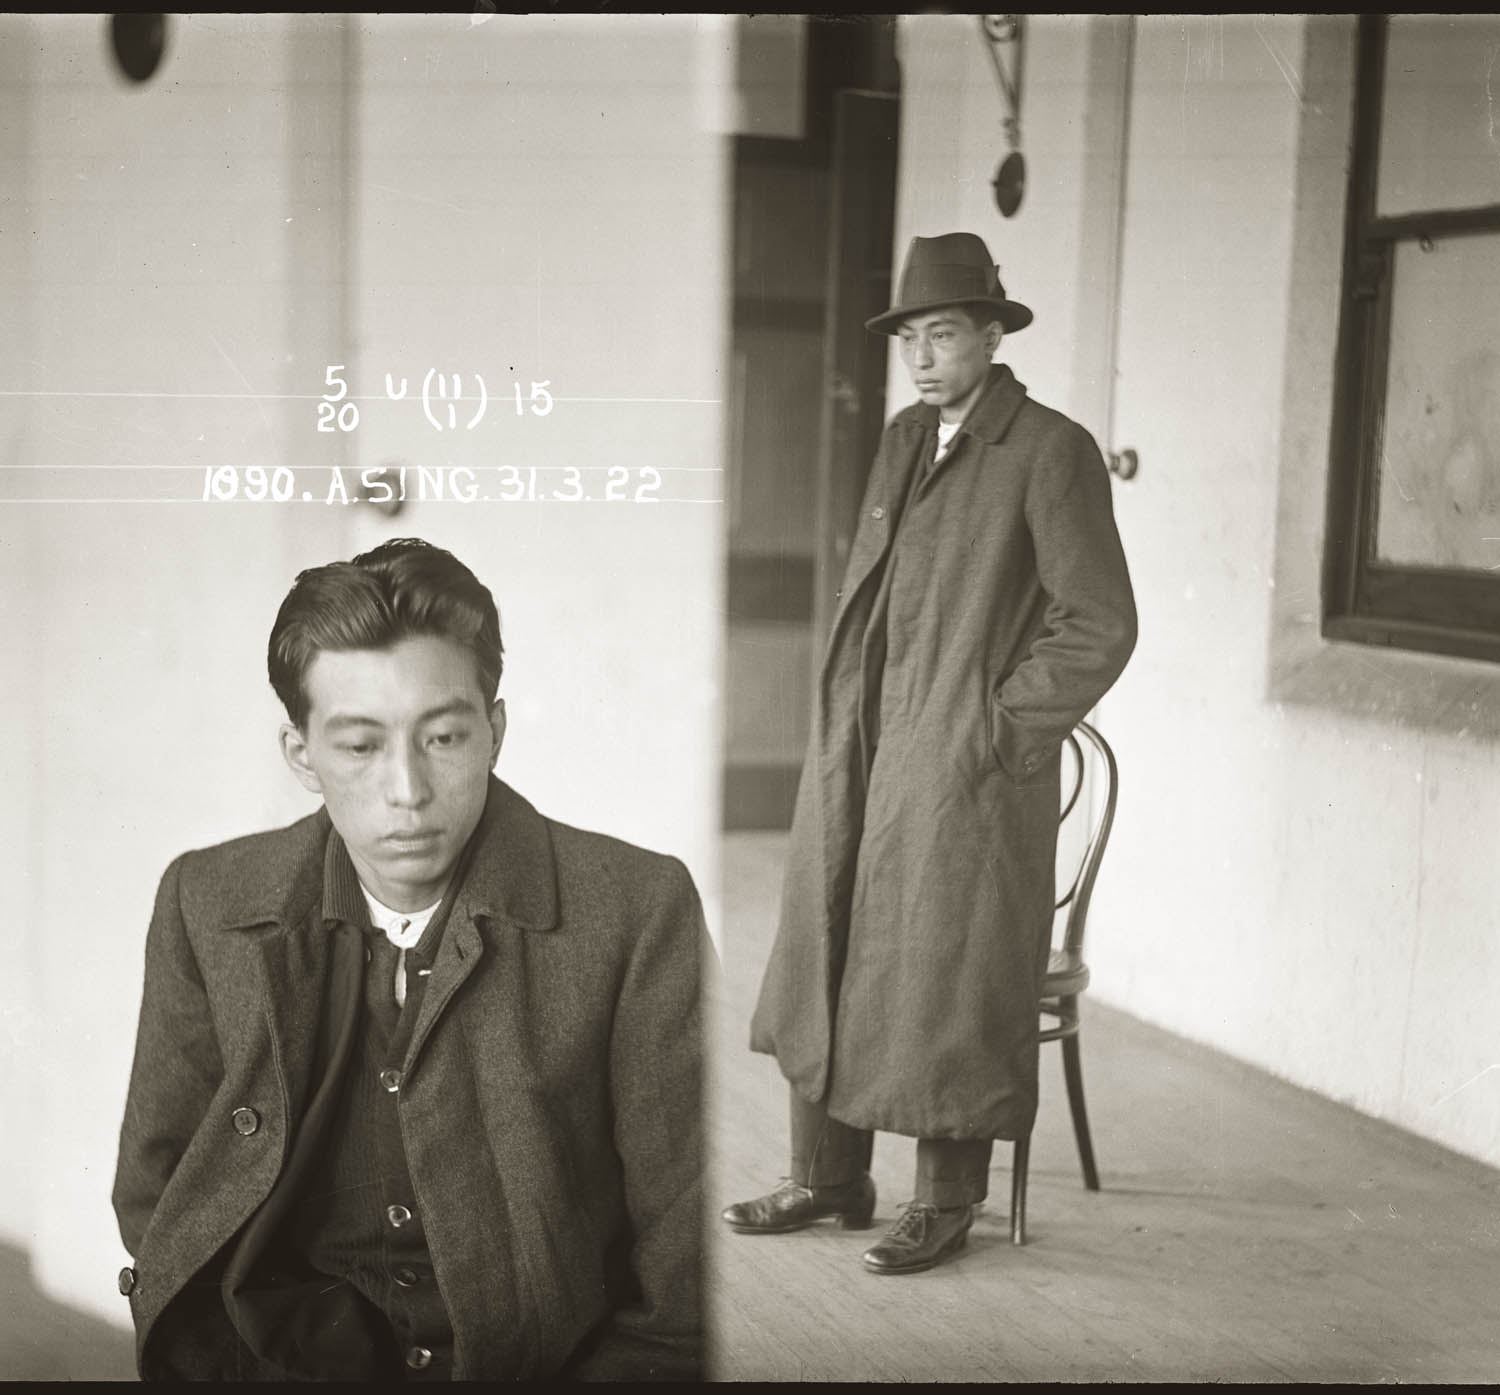 Mug shot of Albert Sing, 31 March 1922. Location unknown.